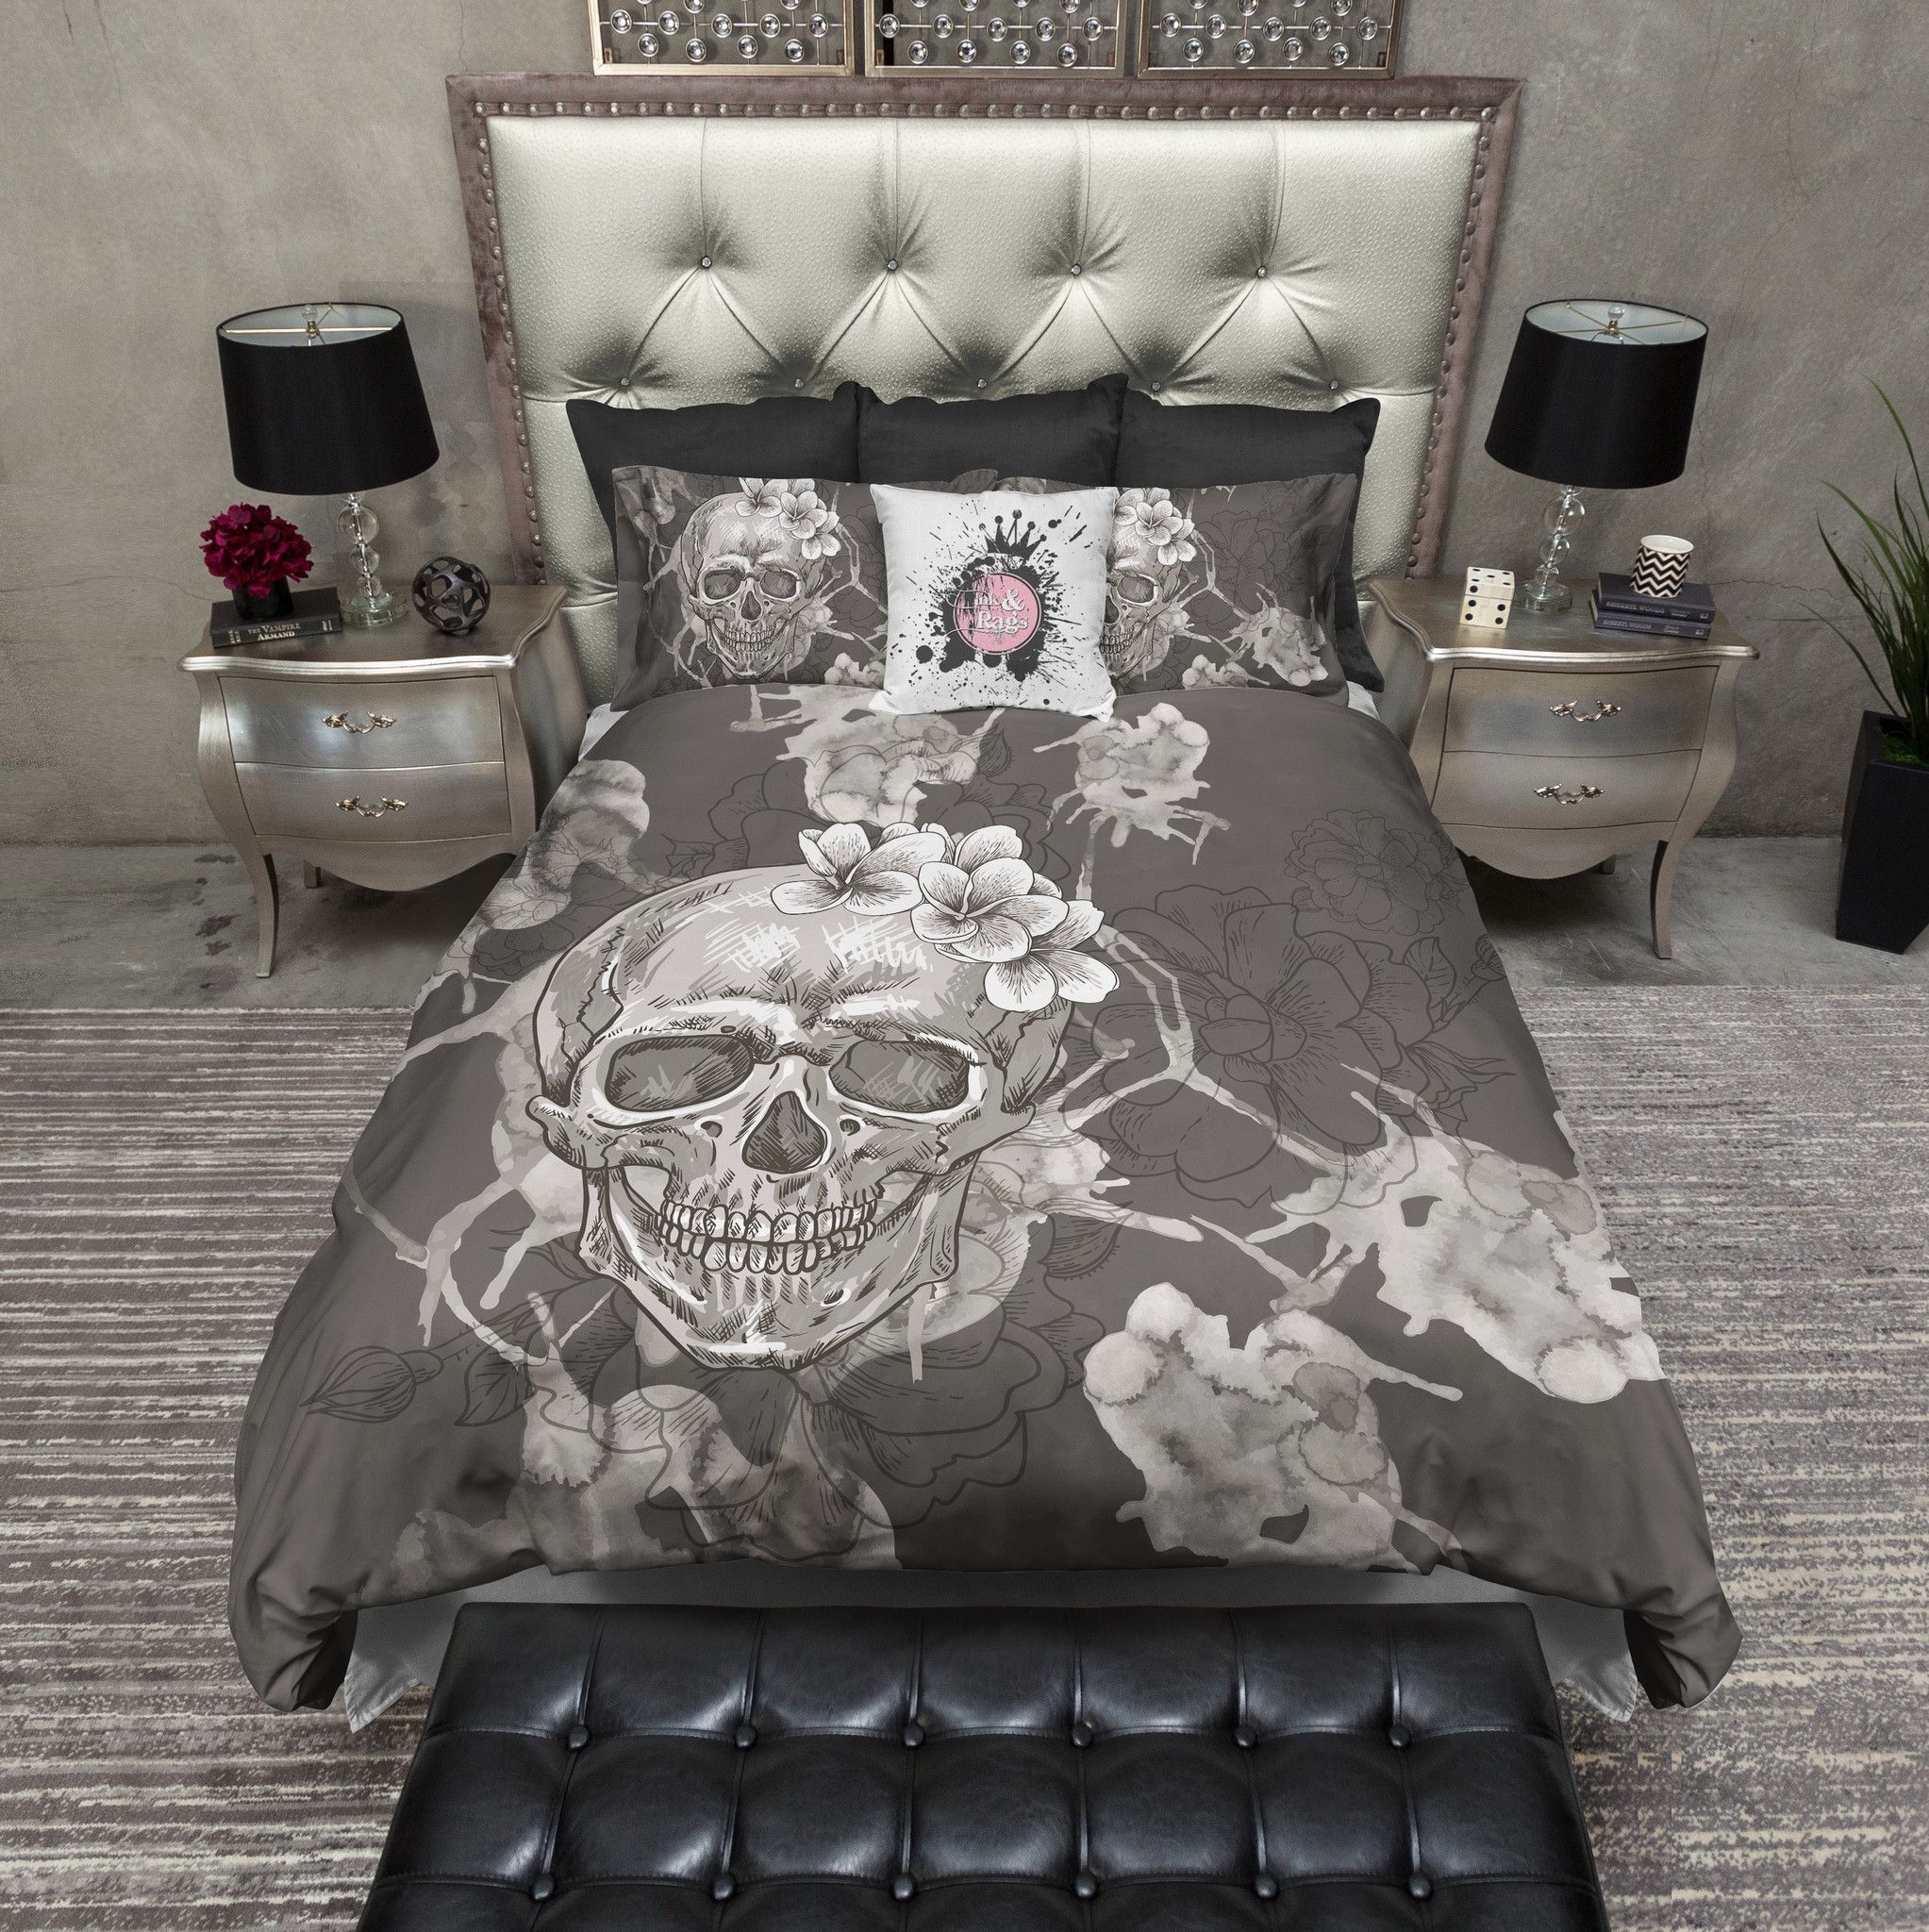 ideas wooden for comforter wa pattern sets walmart cali corner wells size bedroom cover posh california decoration along as and amazon staggering with duvet cal design bedding covers coral grey king kin mind also at